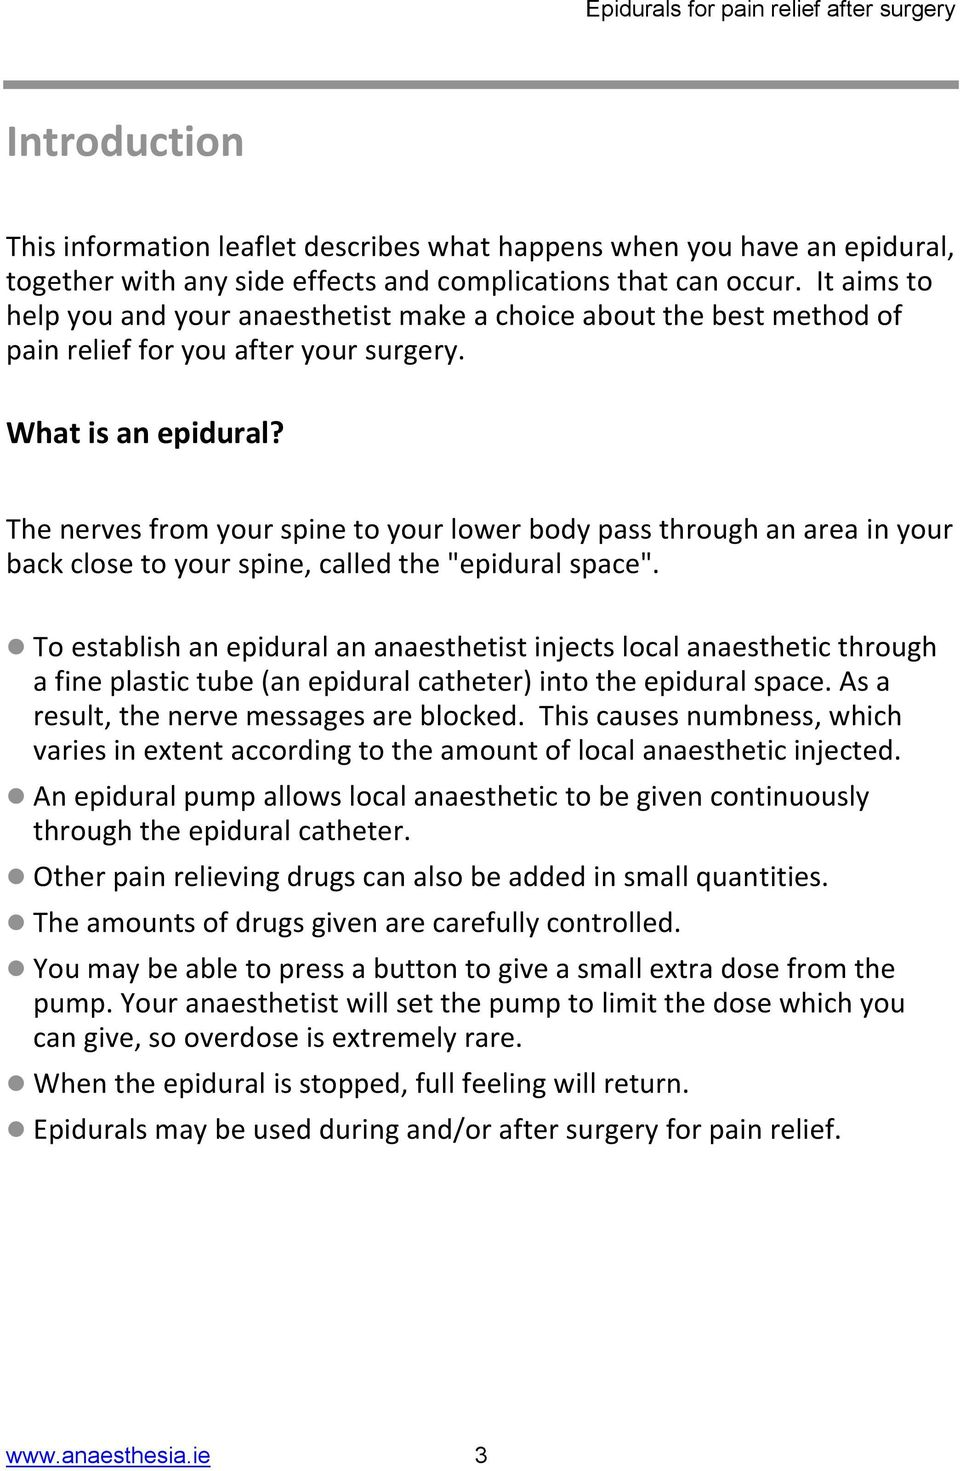 "The nerves from your spine to your lower body pass through an area in your back close to your spine, called the ""epidural space""."